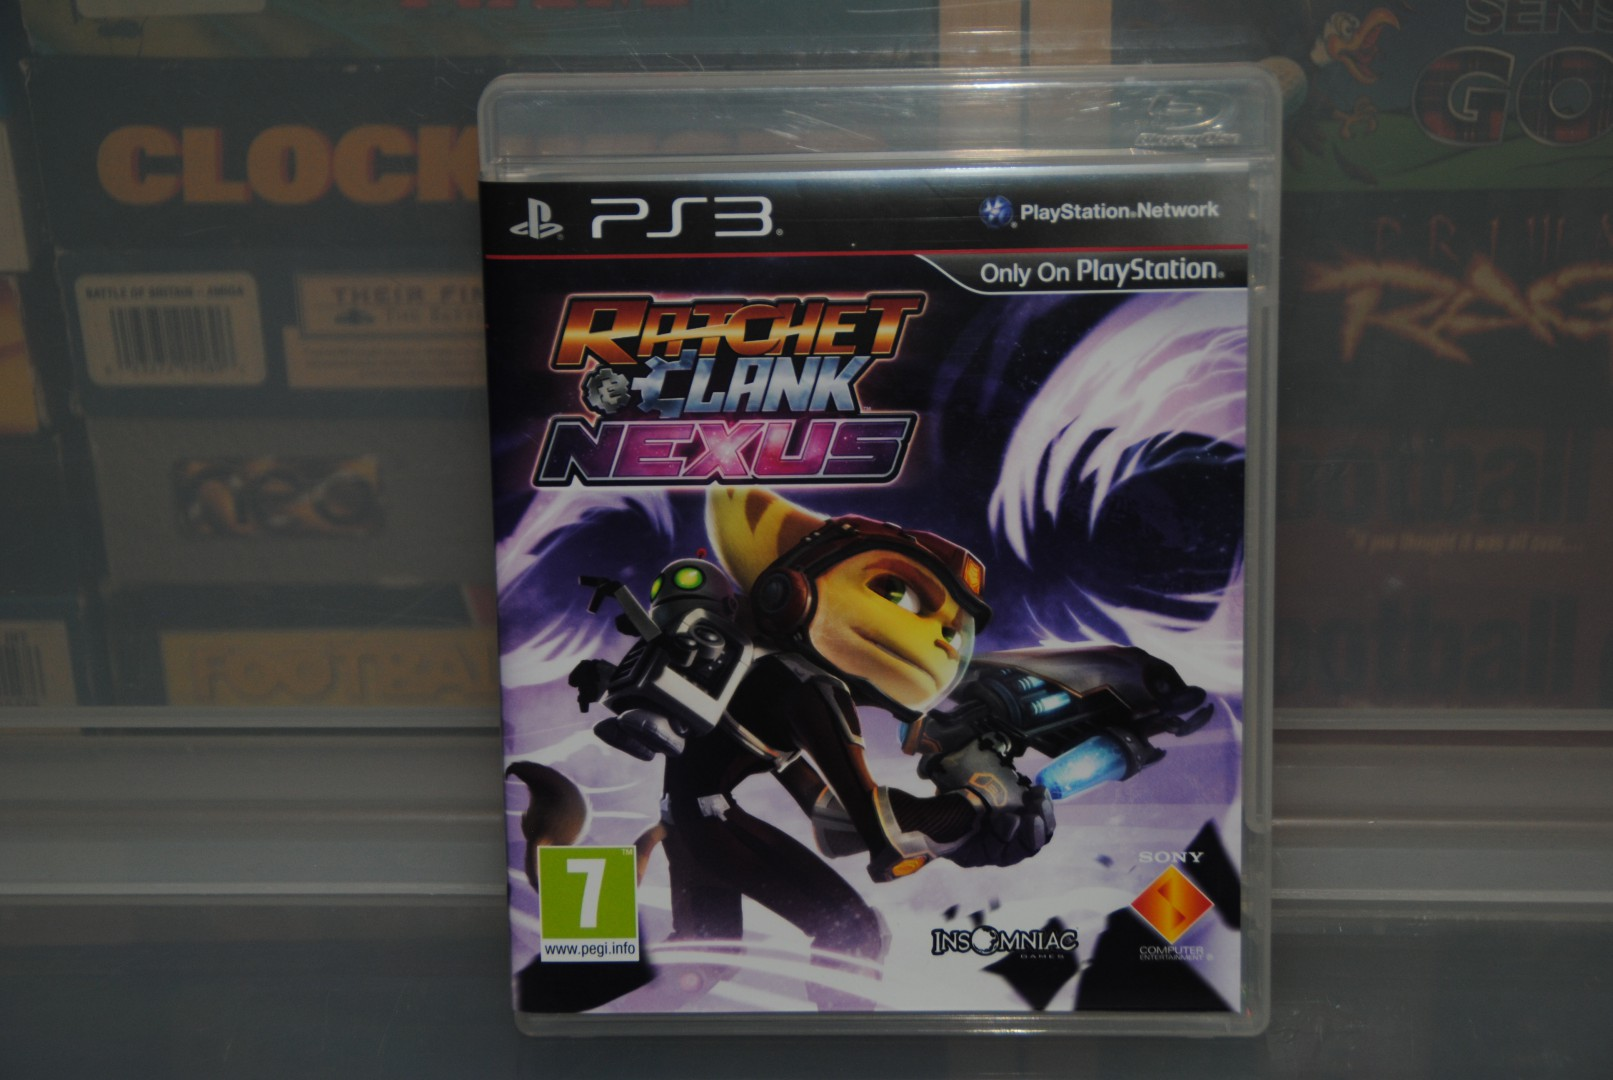 Ratchet & Clank Nexus, the return of Clank as we know it.